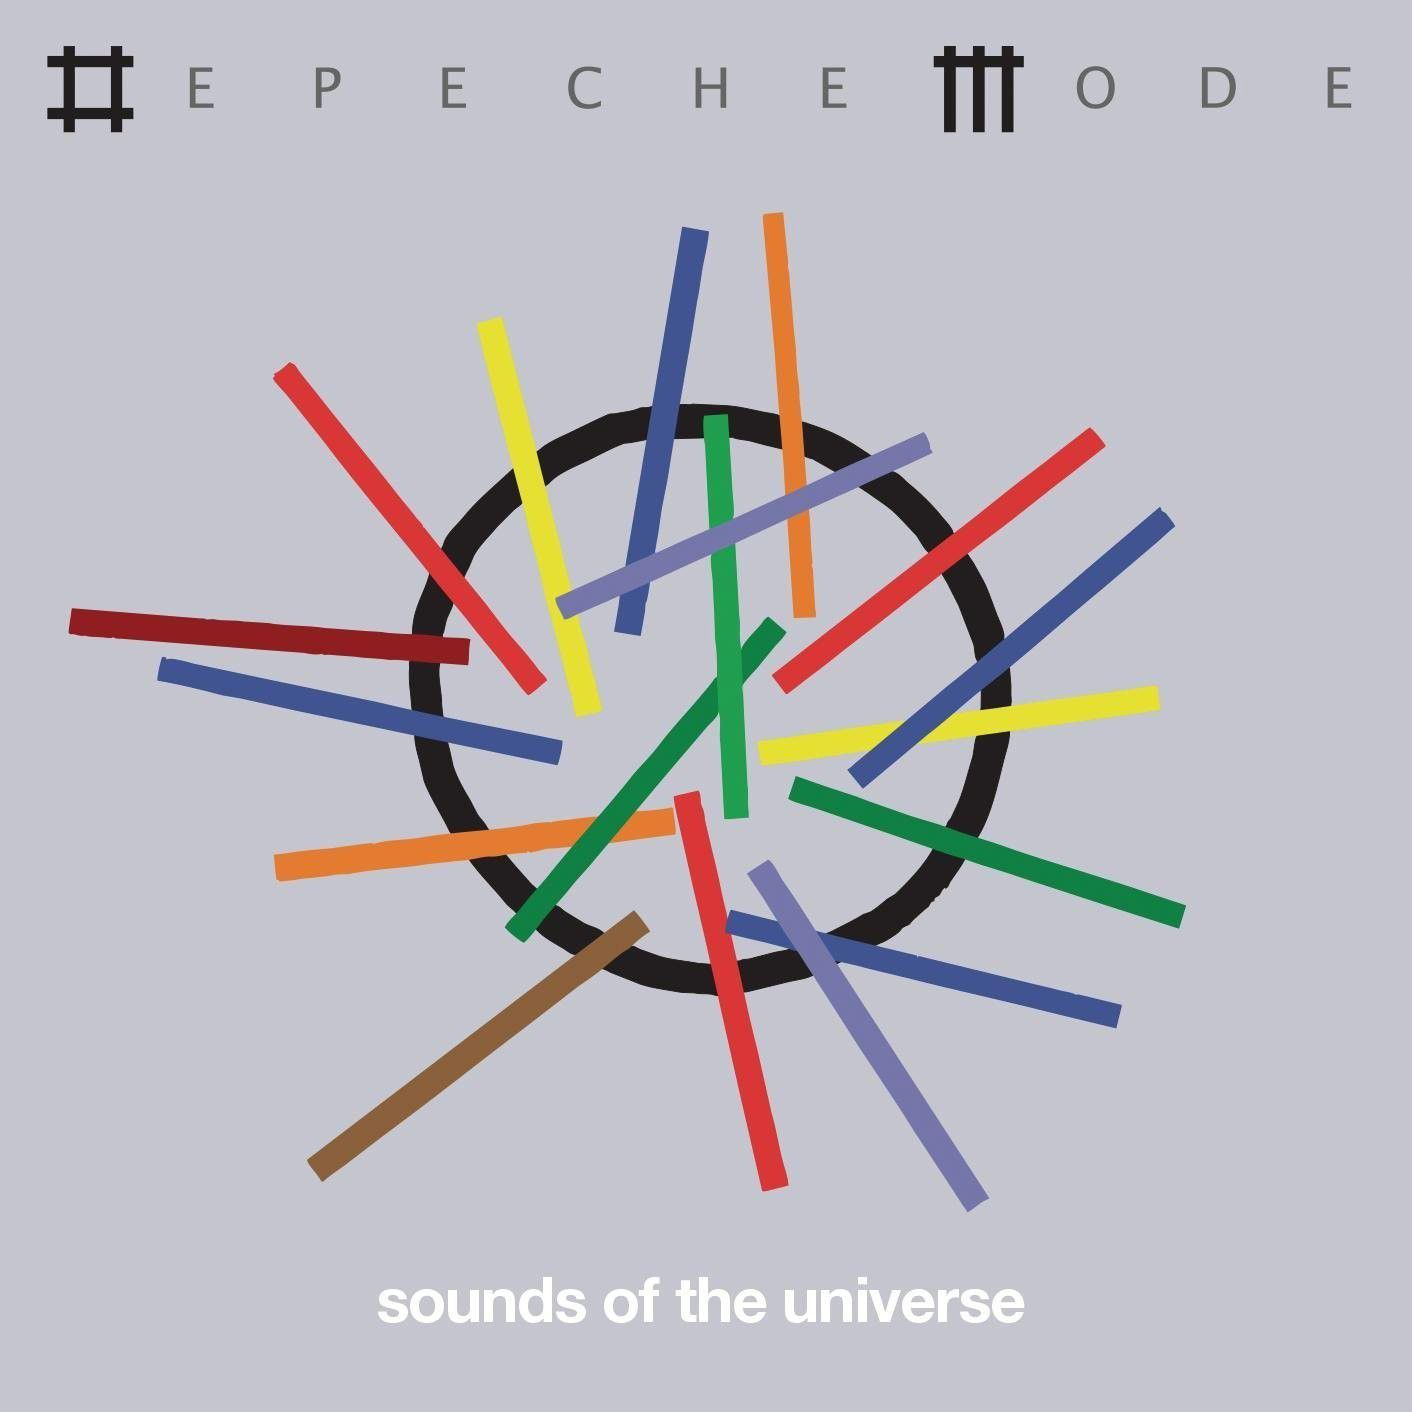 Sounds of the universe: LP